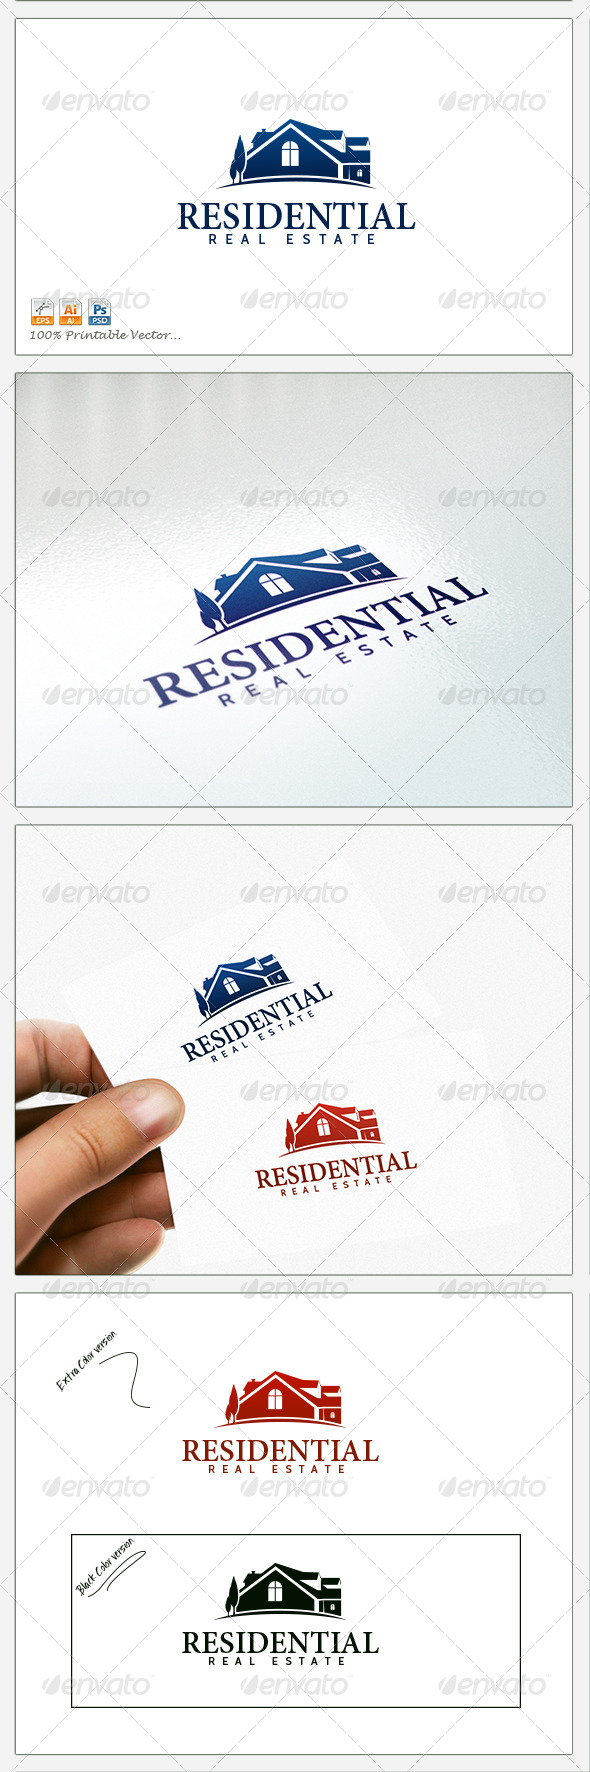 GraphicRiver Arend Real Estate 3799731